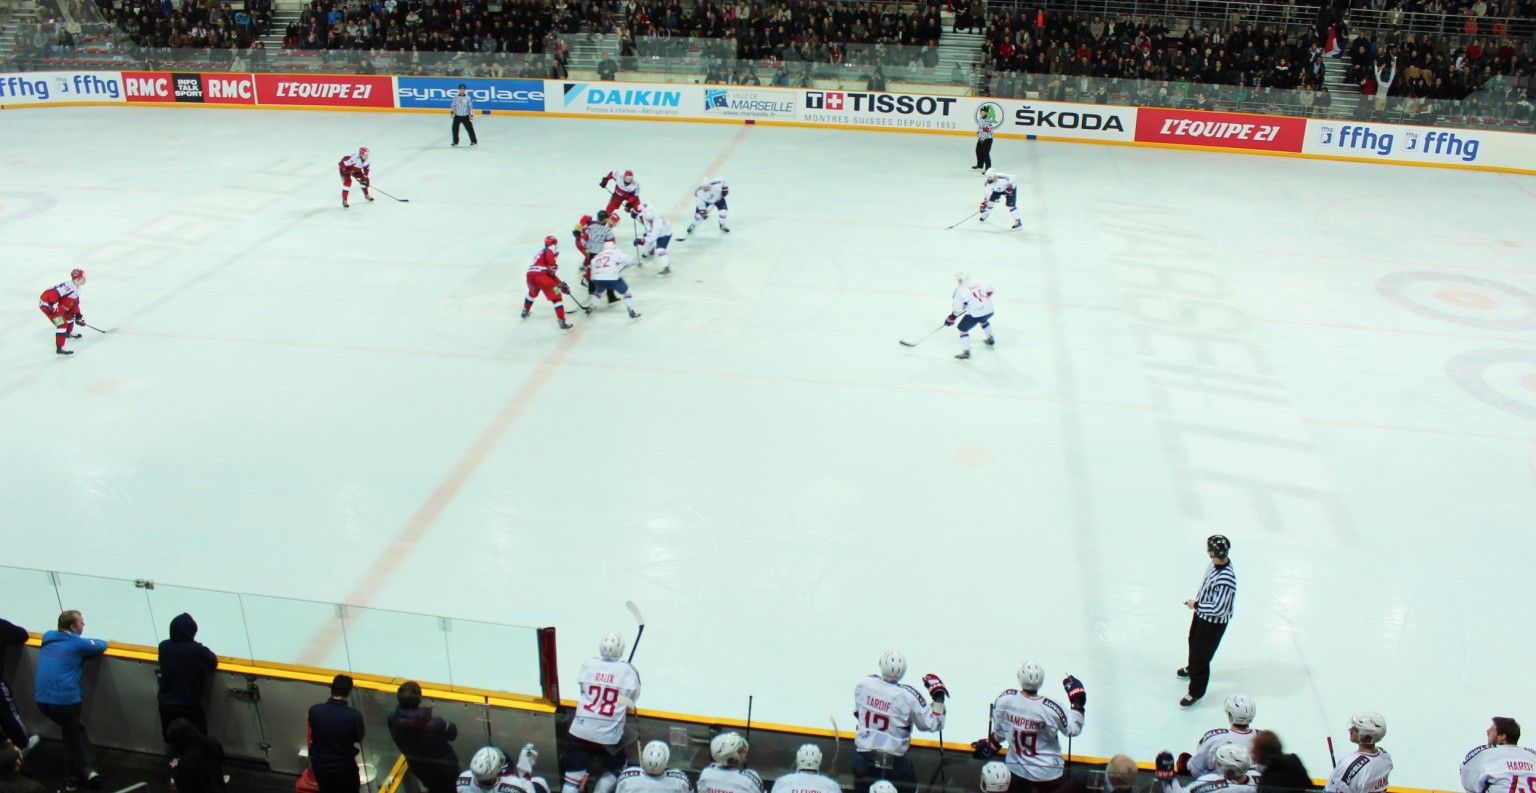 Match amical France-Russie, POMGE Marseille.